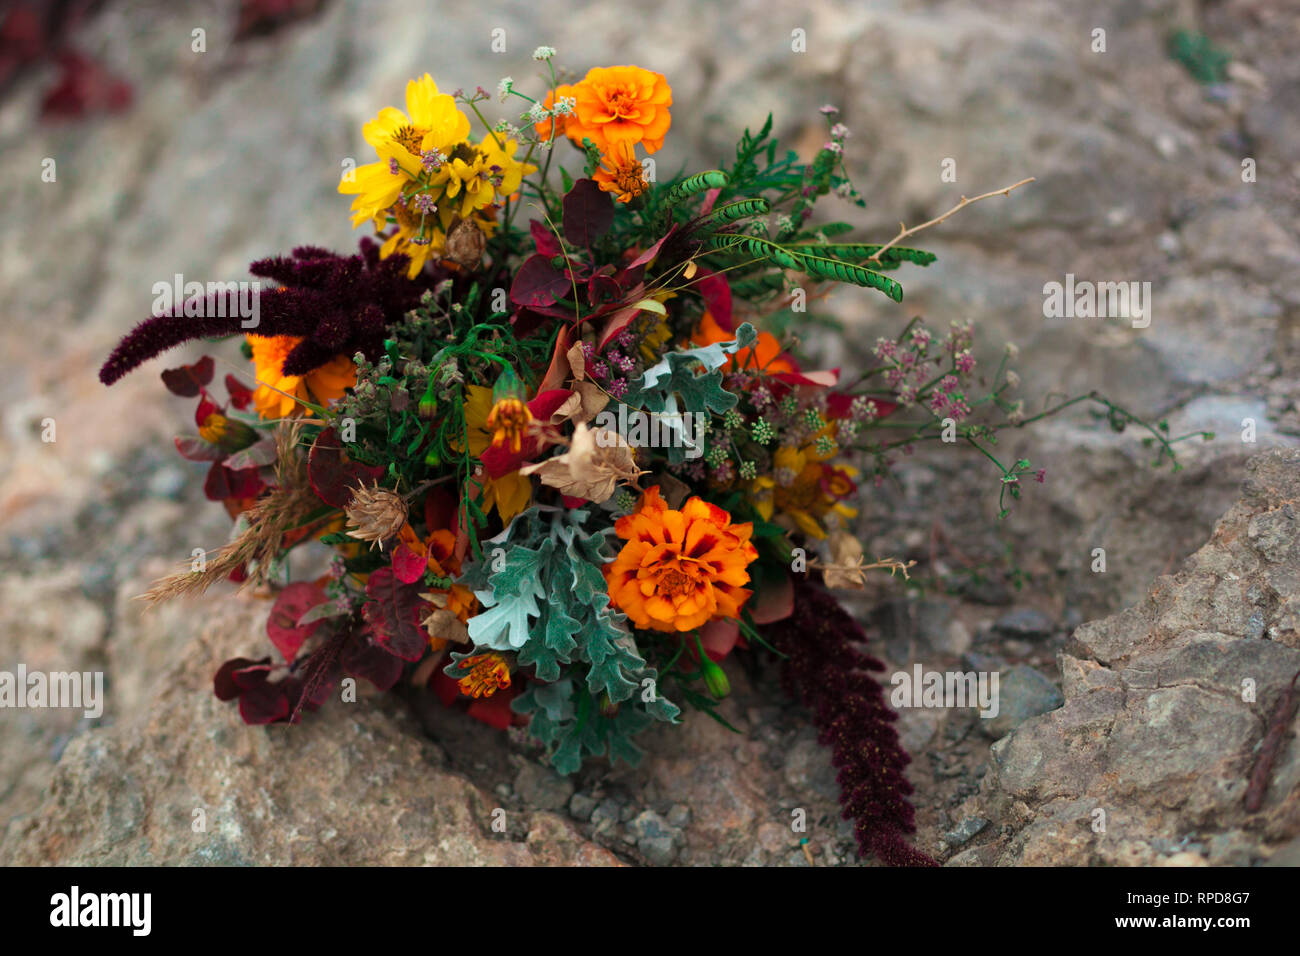 Wedding Bouquet In A Bright Autumn Style On The Background Of Stone Rocks Marigold Flowers Stock Photo Alamy